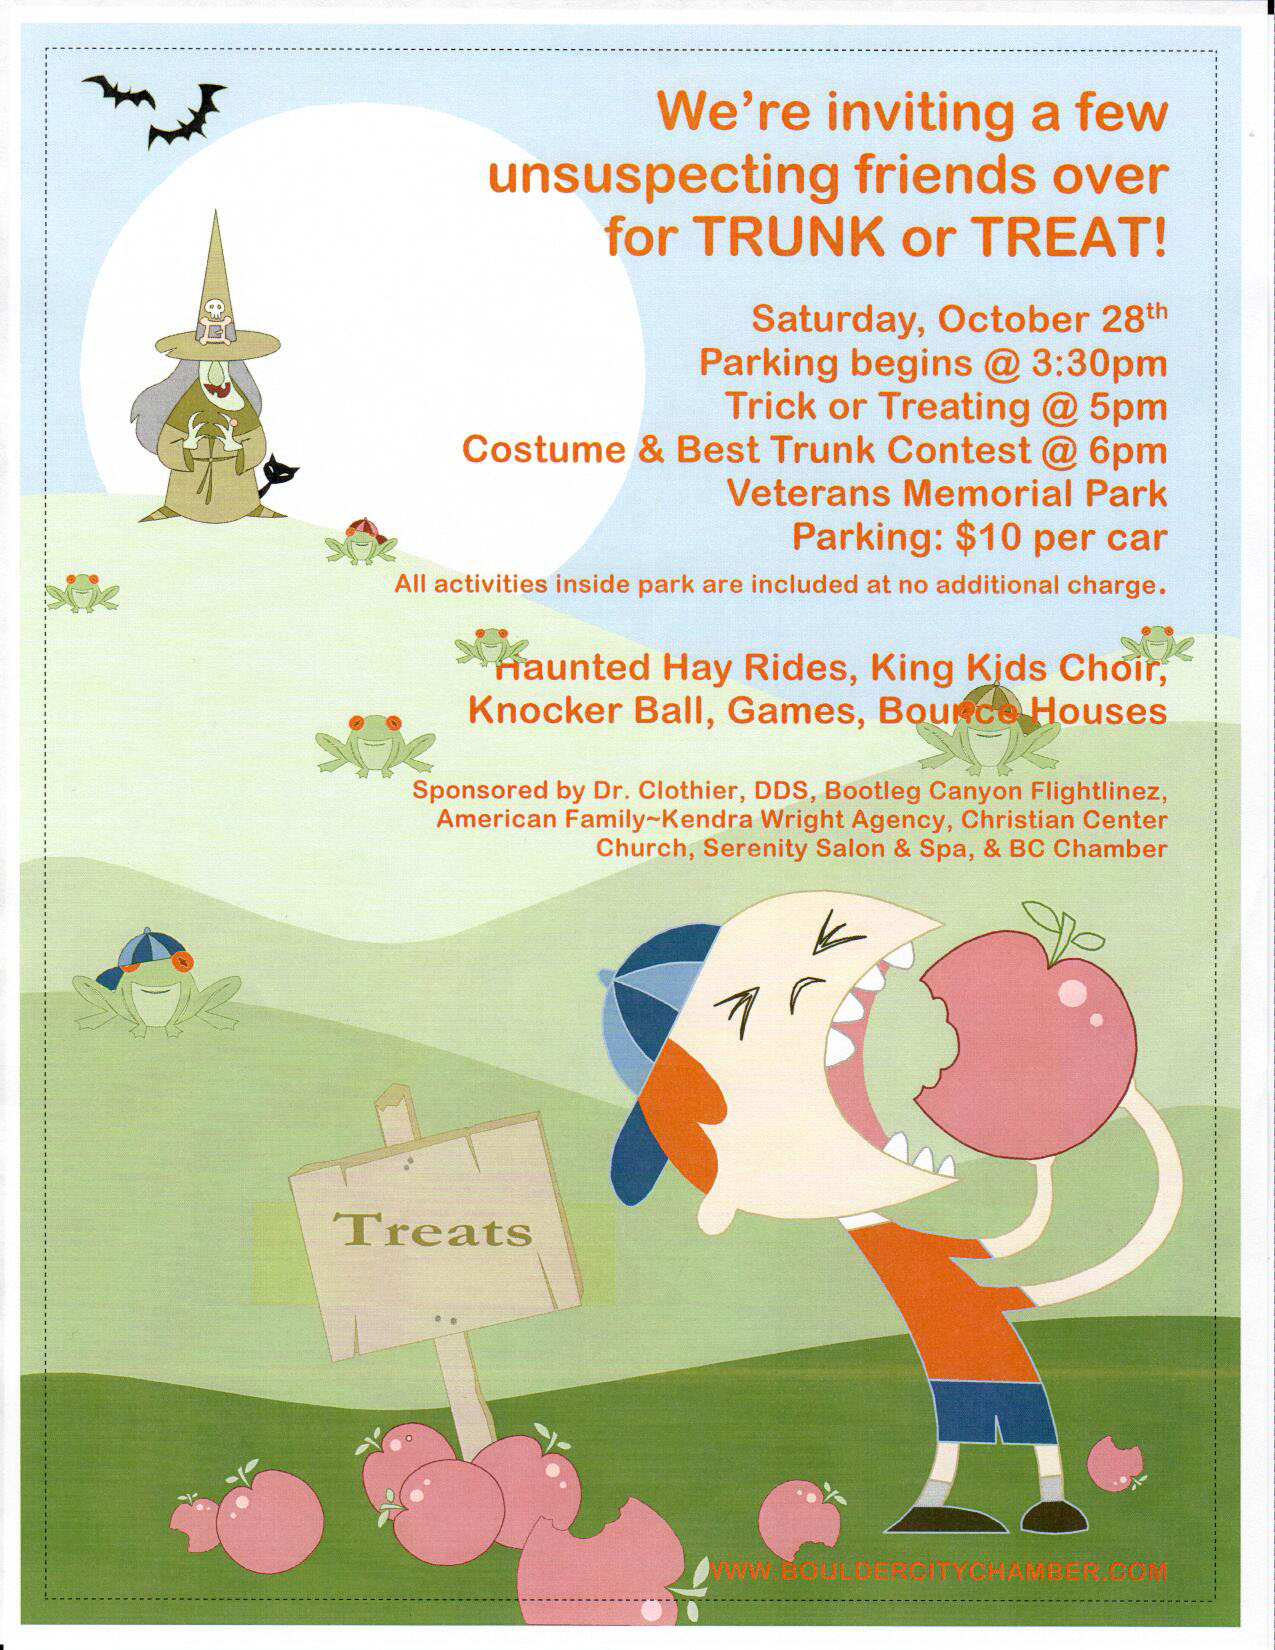 Trunk Treat Flyer Boulder City, Nevada